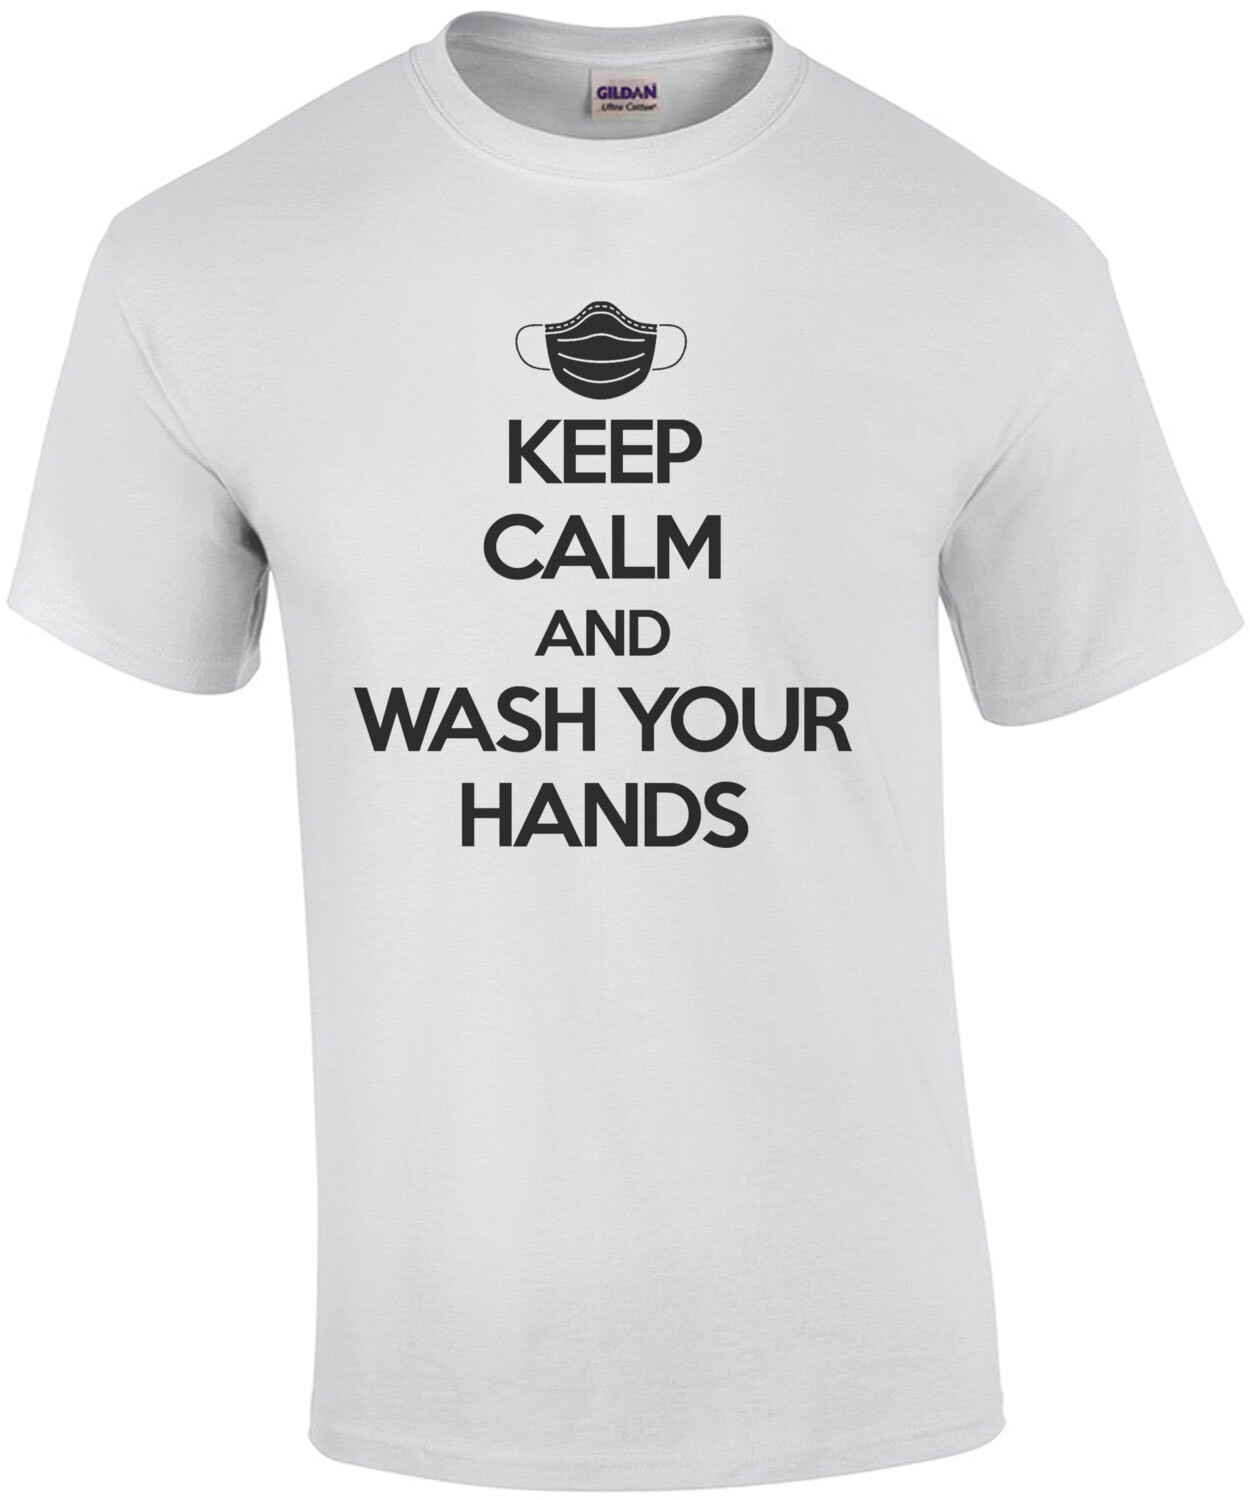 Keep Calm and wash your hands - Coronavirus T-Shirt